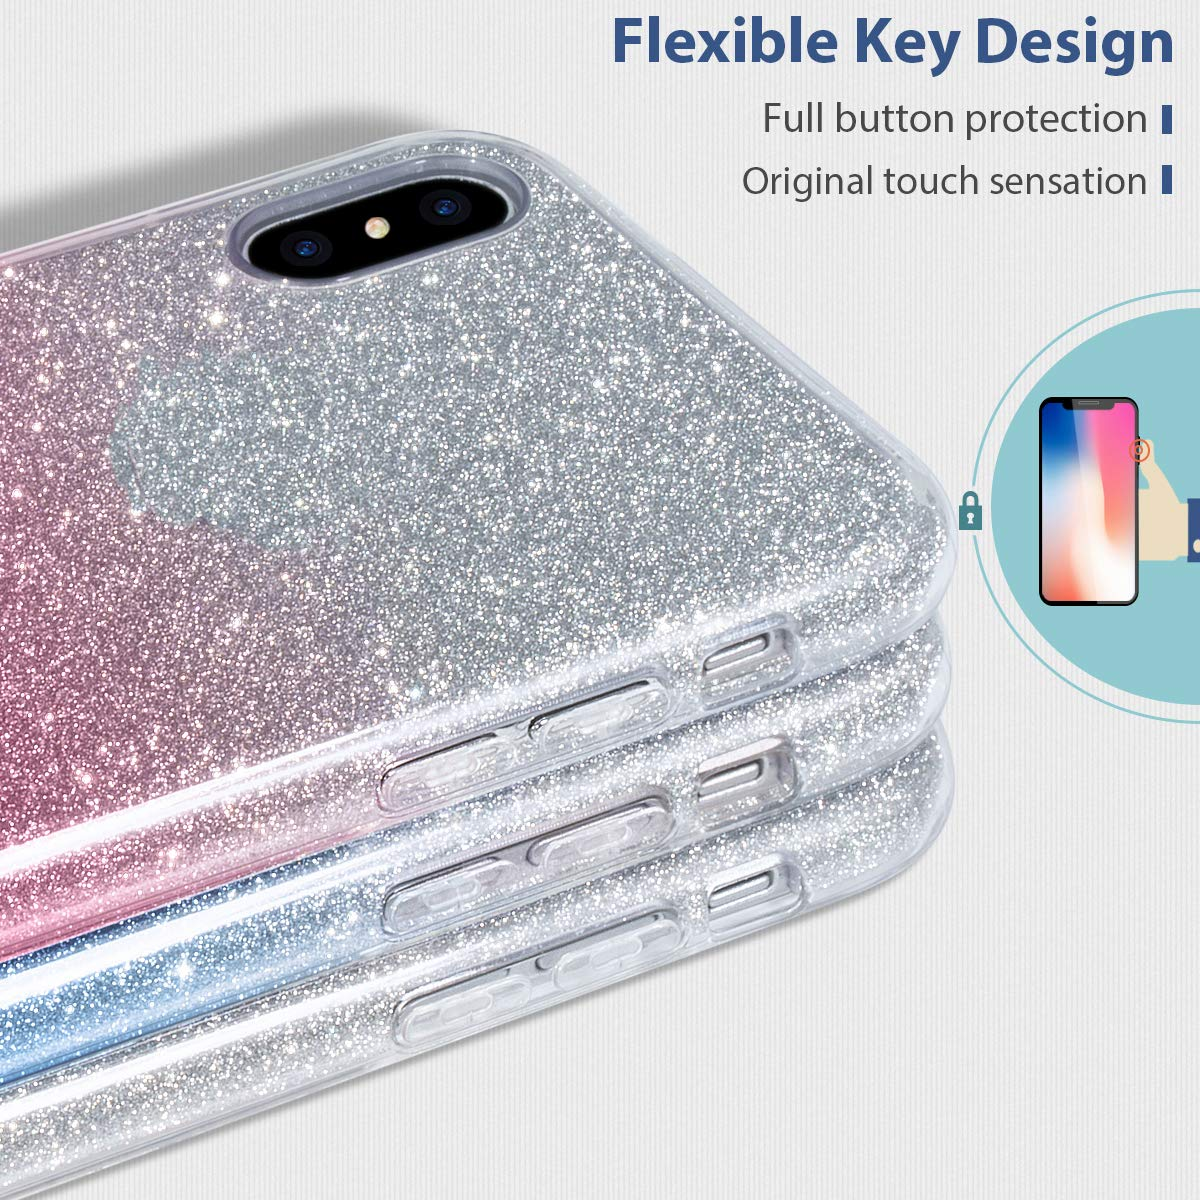 MILPROX iPhone Xs Plus case Shiny Sparkly Silm Bling Crystal Clear 3 Layer Hybrid Anti-Slick//Protective// Soft Case iPhone Xs Plus 2018 - Gold